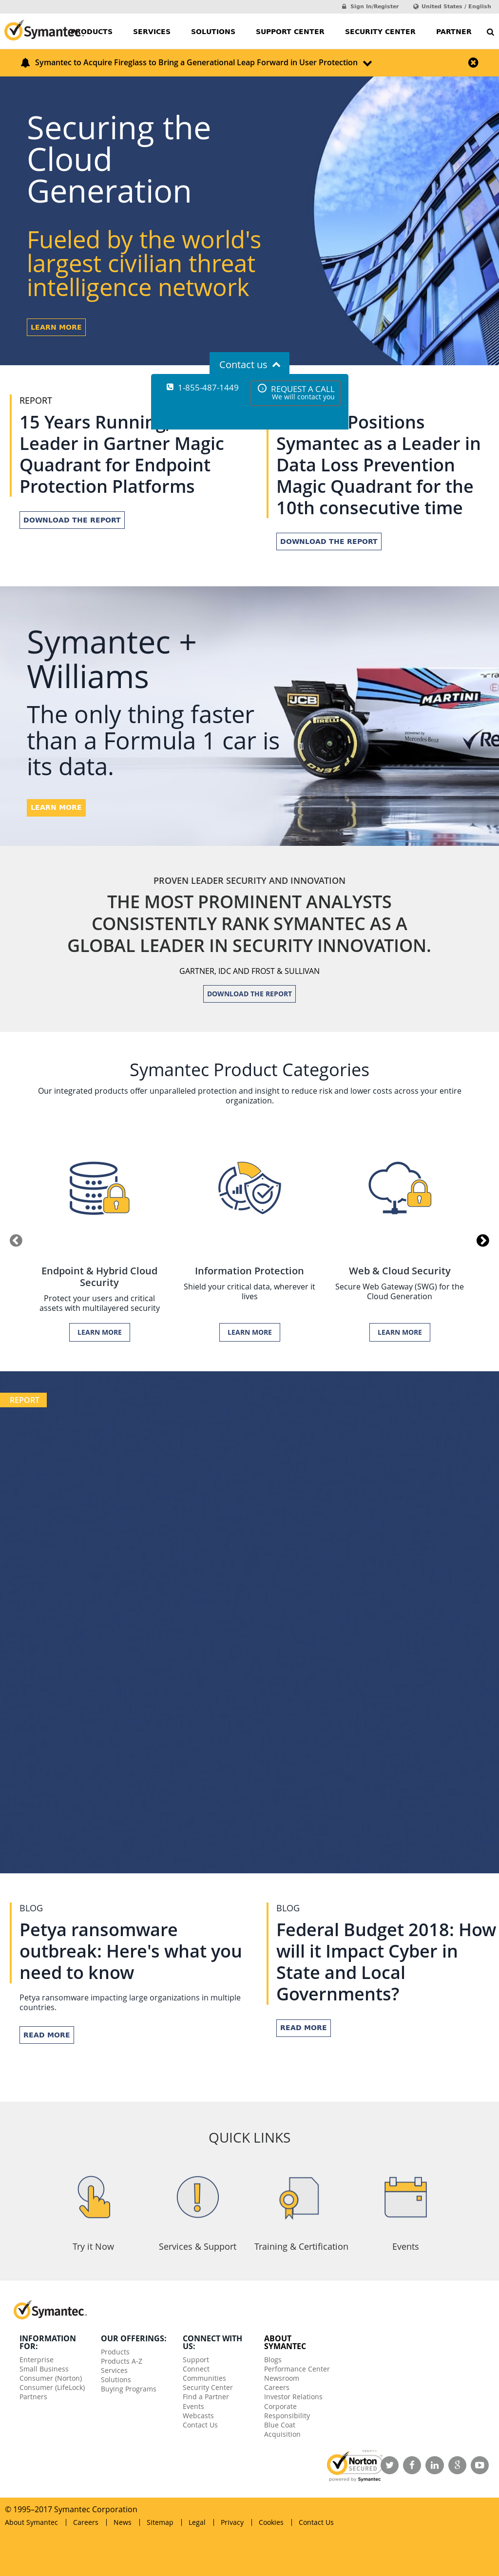 Symantec Competitors, Revenue and Employees - Owler Company